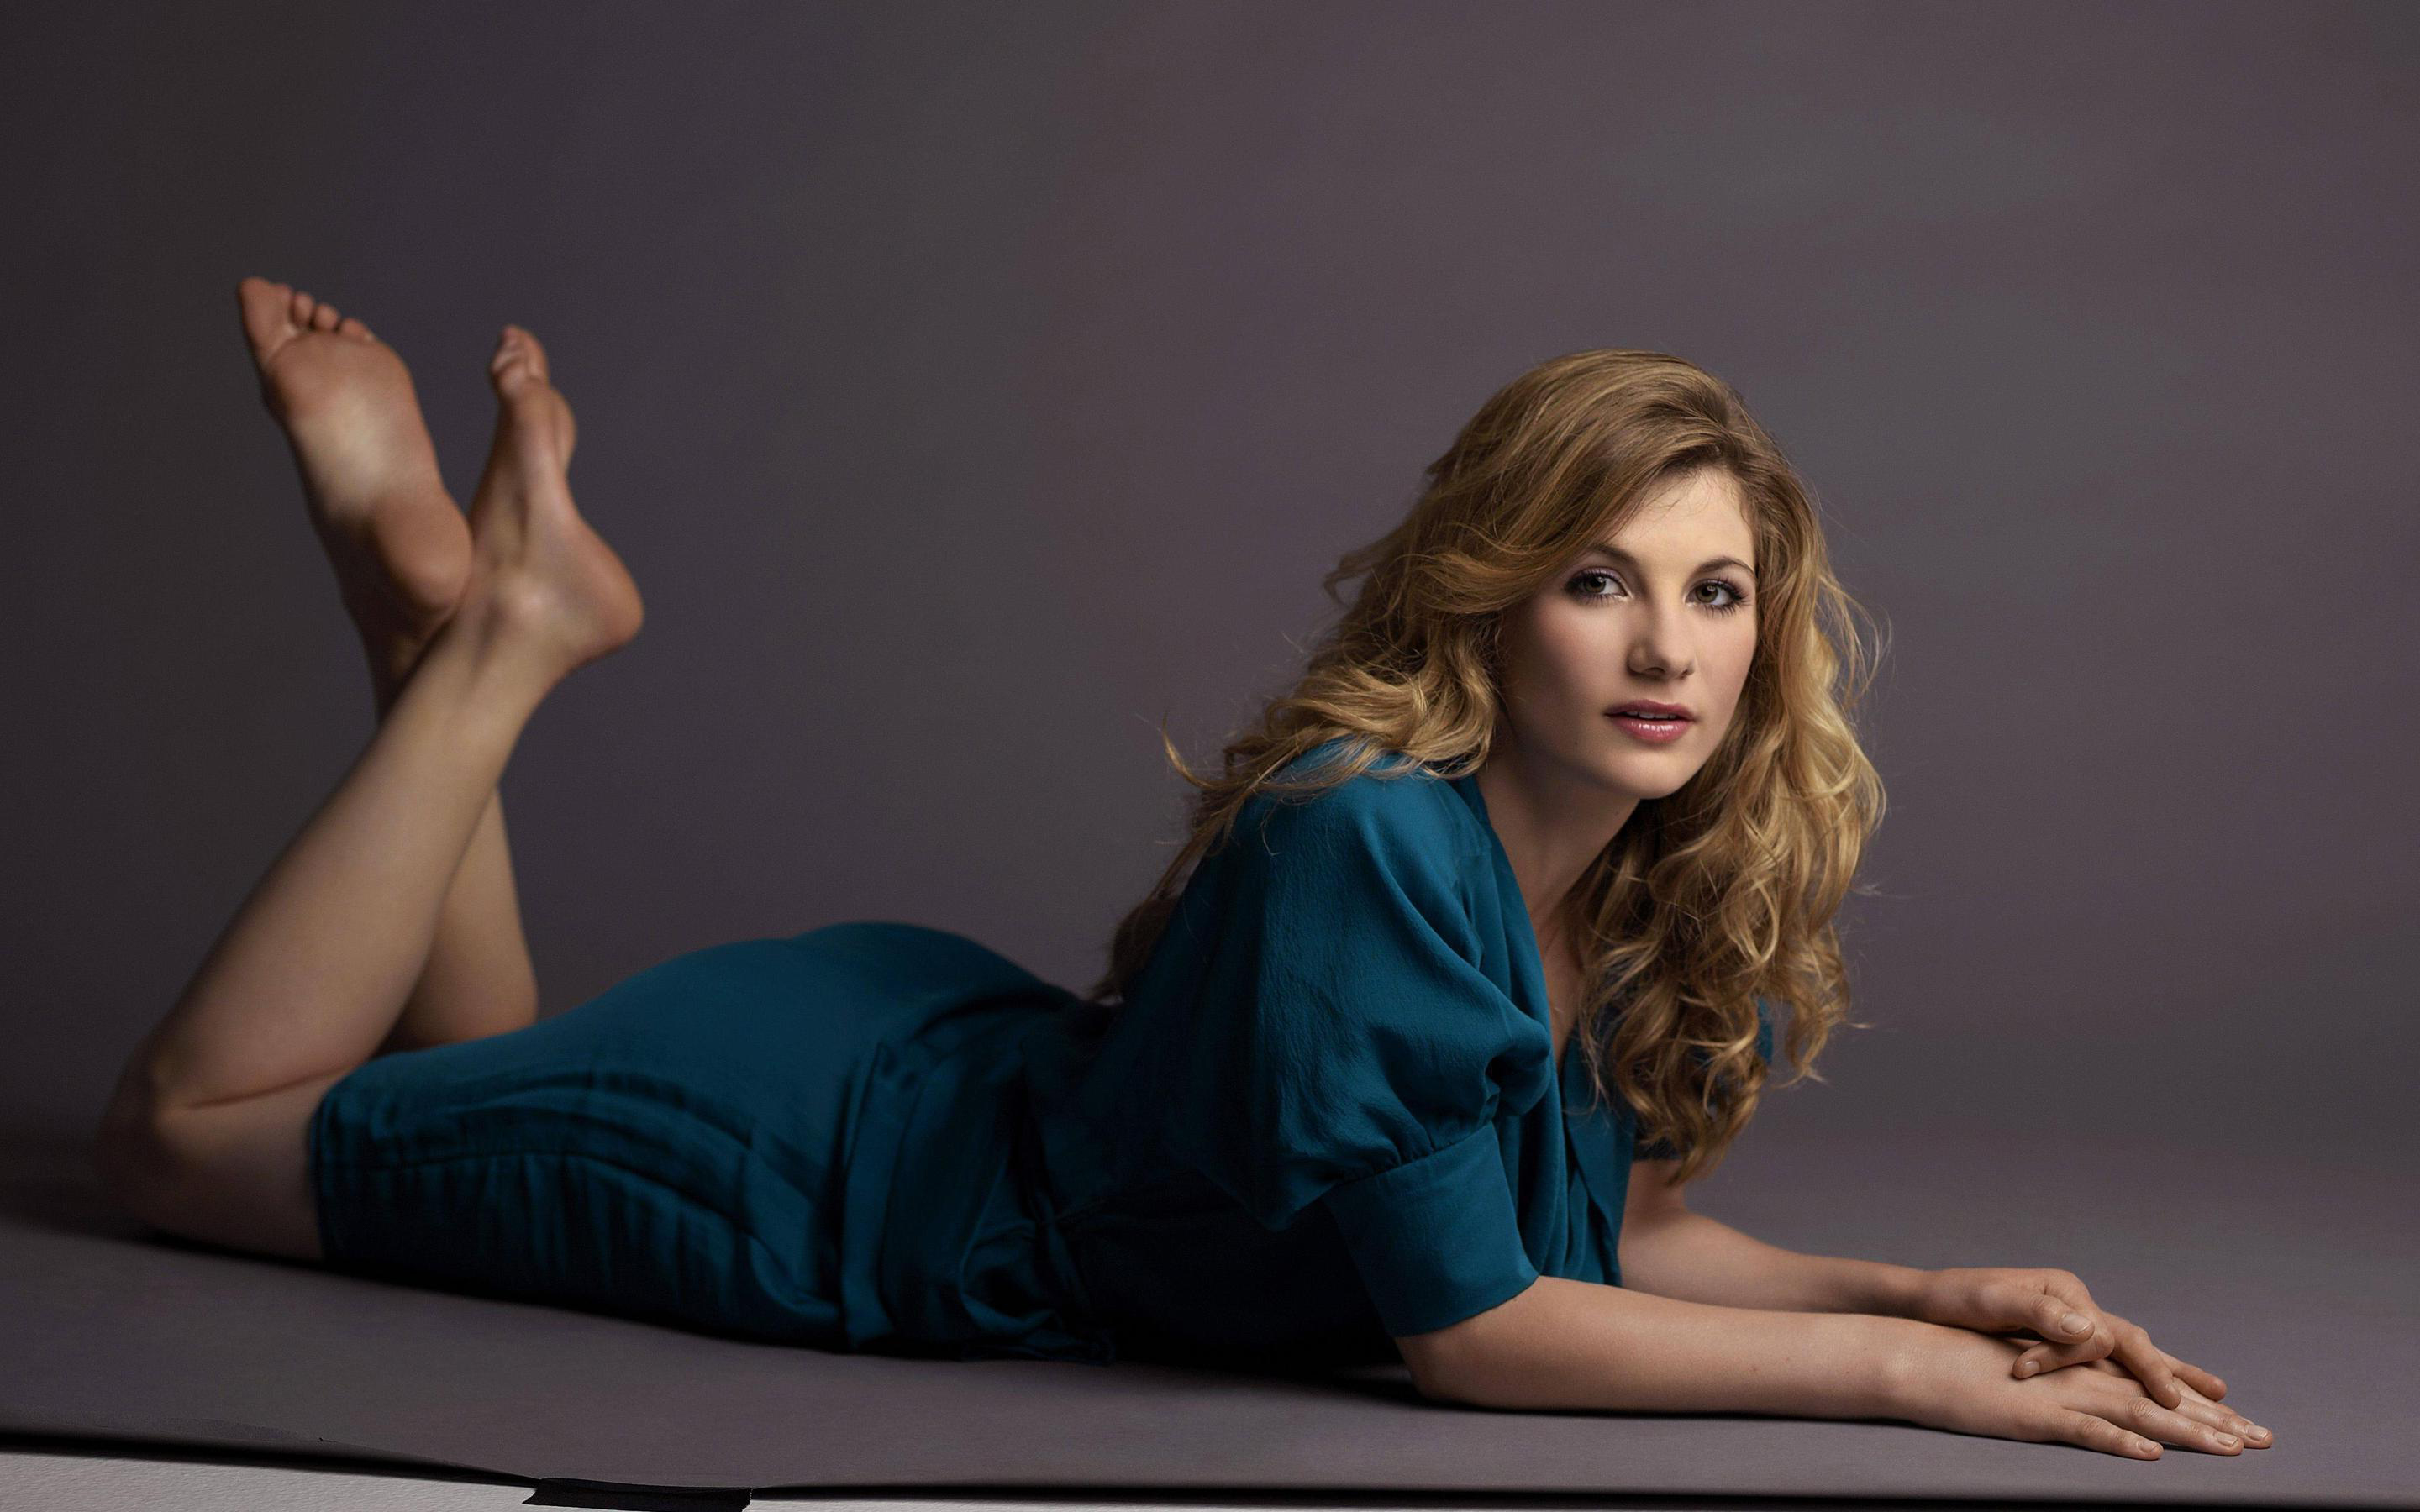 Hot Feet Jodie Whittaker naked photo 2017